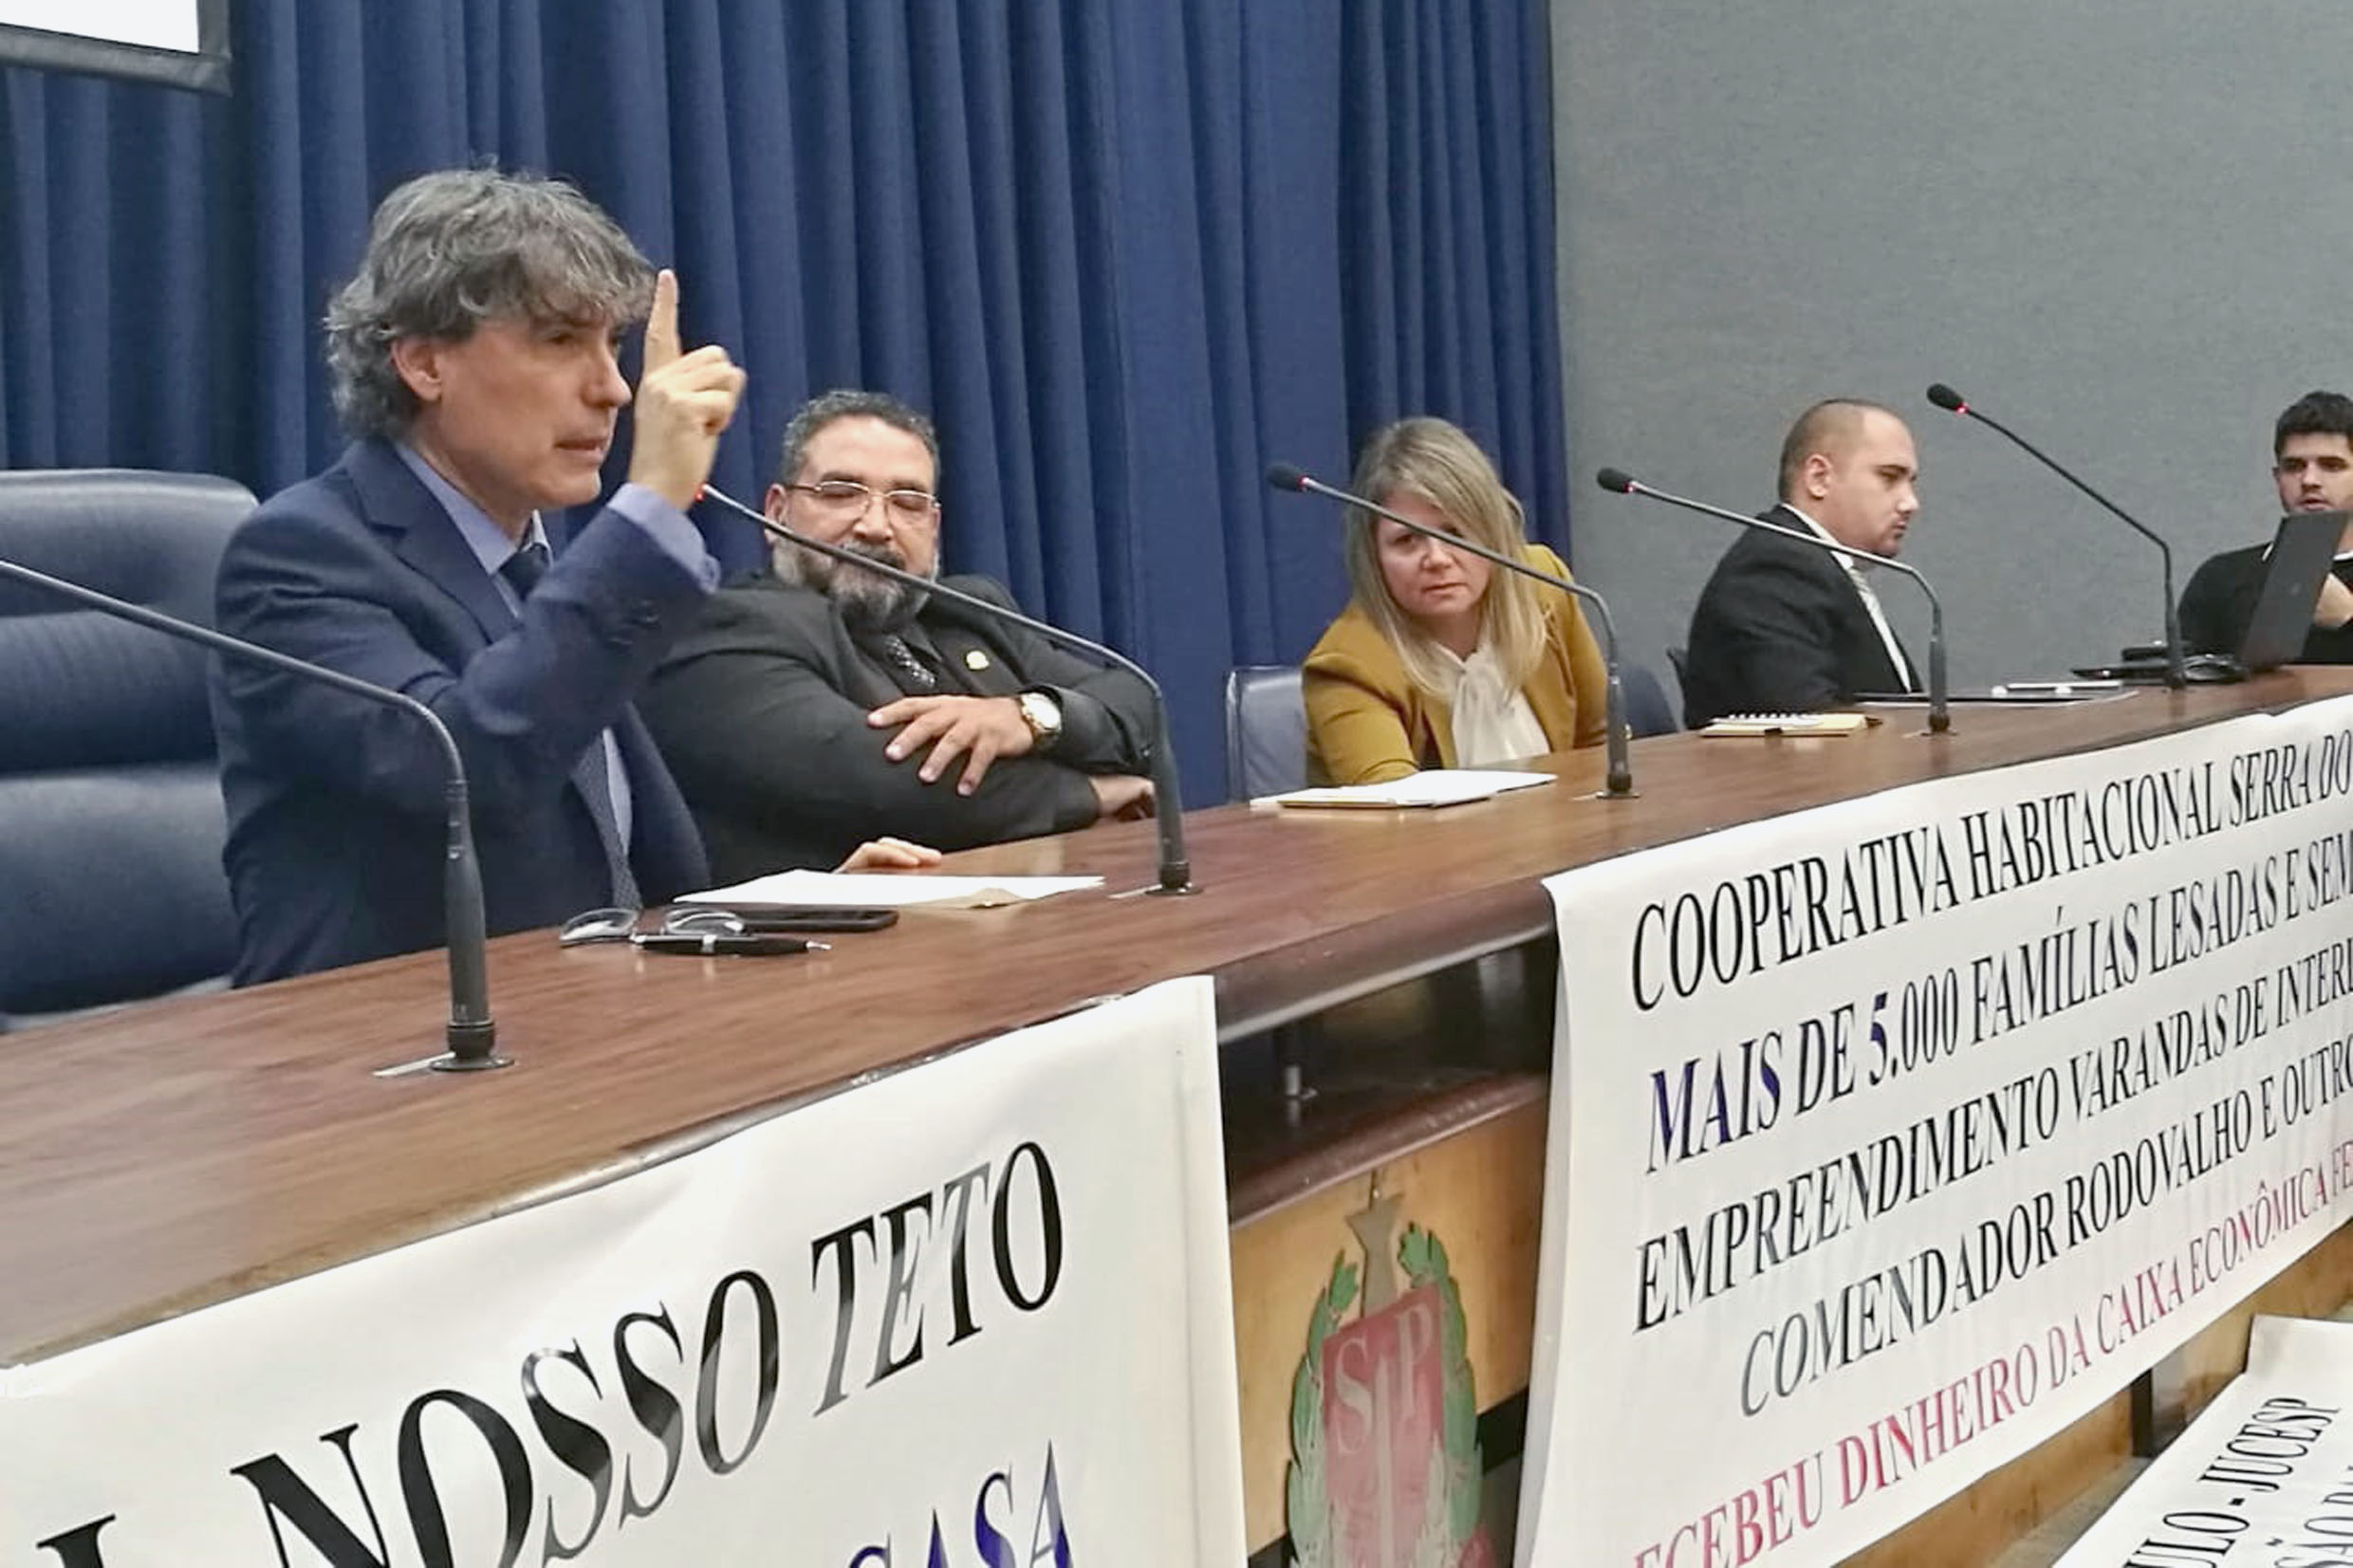 Carlos Giannazi (ao microfone)<a style='float:right' href='https://www3.al.sp.gov.br/repositorio/noticia/N-06-2018/fg224609.jpg' target=_blank><img src='/_img/material-file-download-white.png' width='14px' alt='Clique para baixar a imagem'></a>